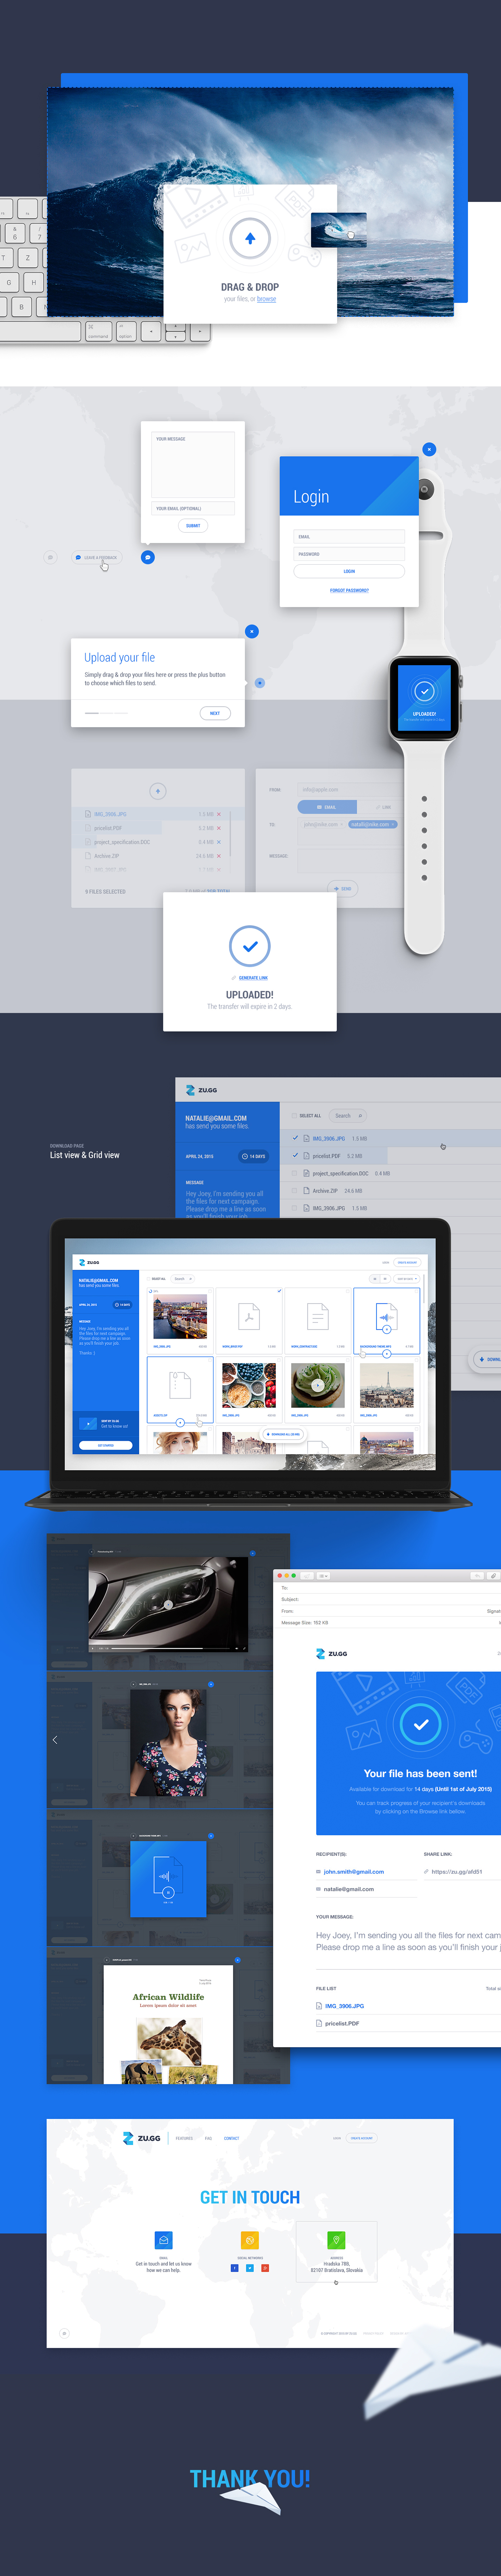 zu gg file sharing on behance